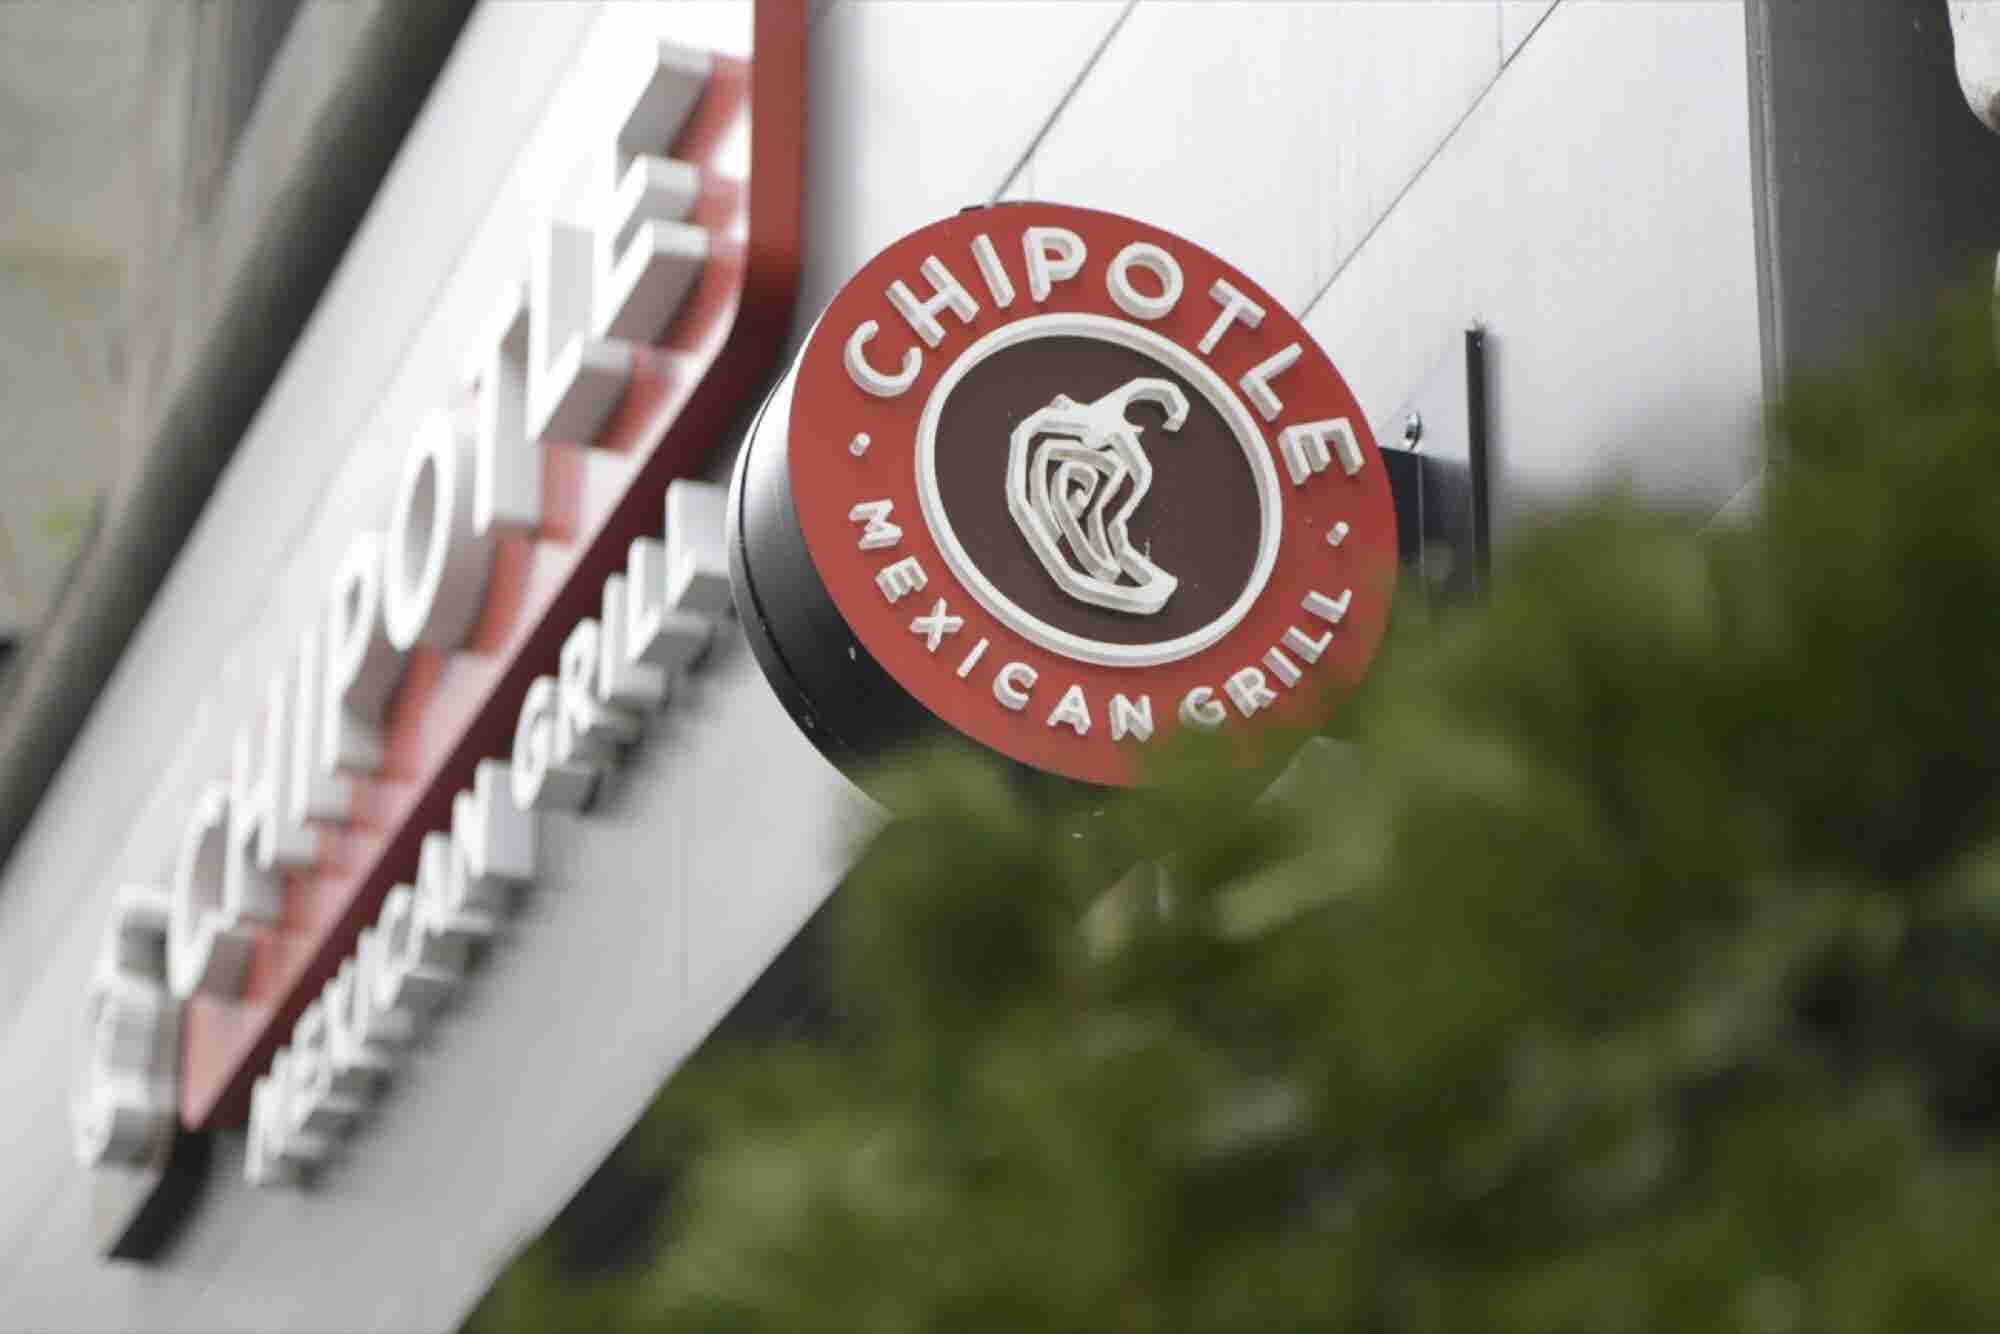 Chipotle Plans to Hire 4,000 New Workers in Just One Day